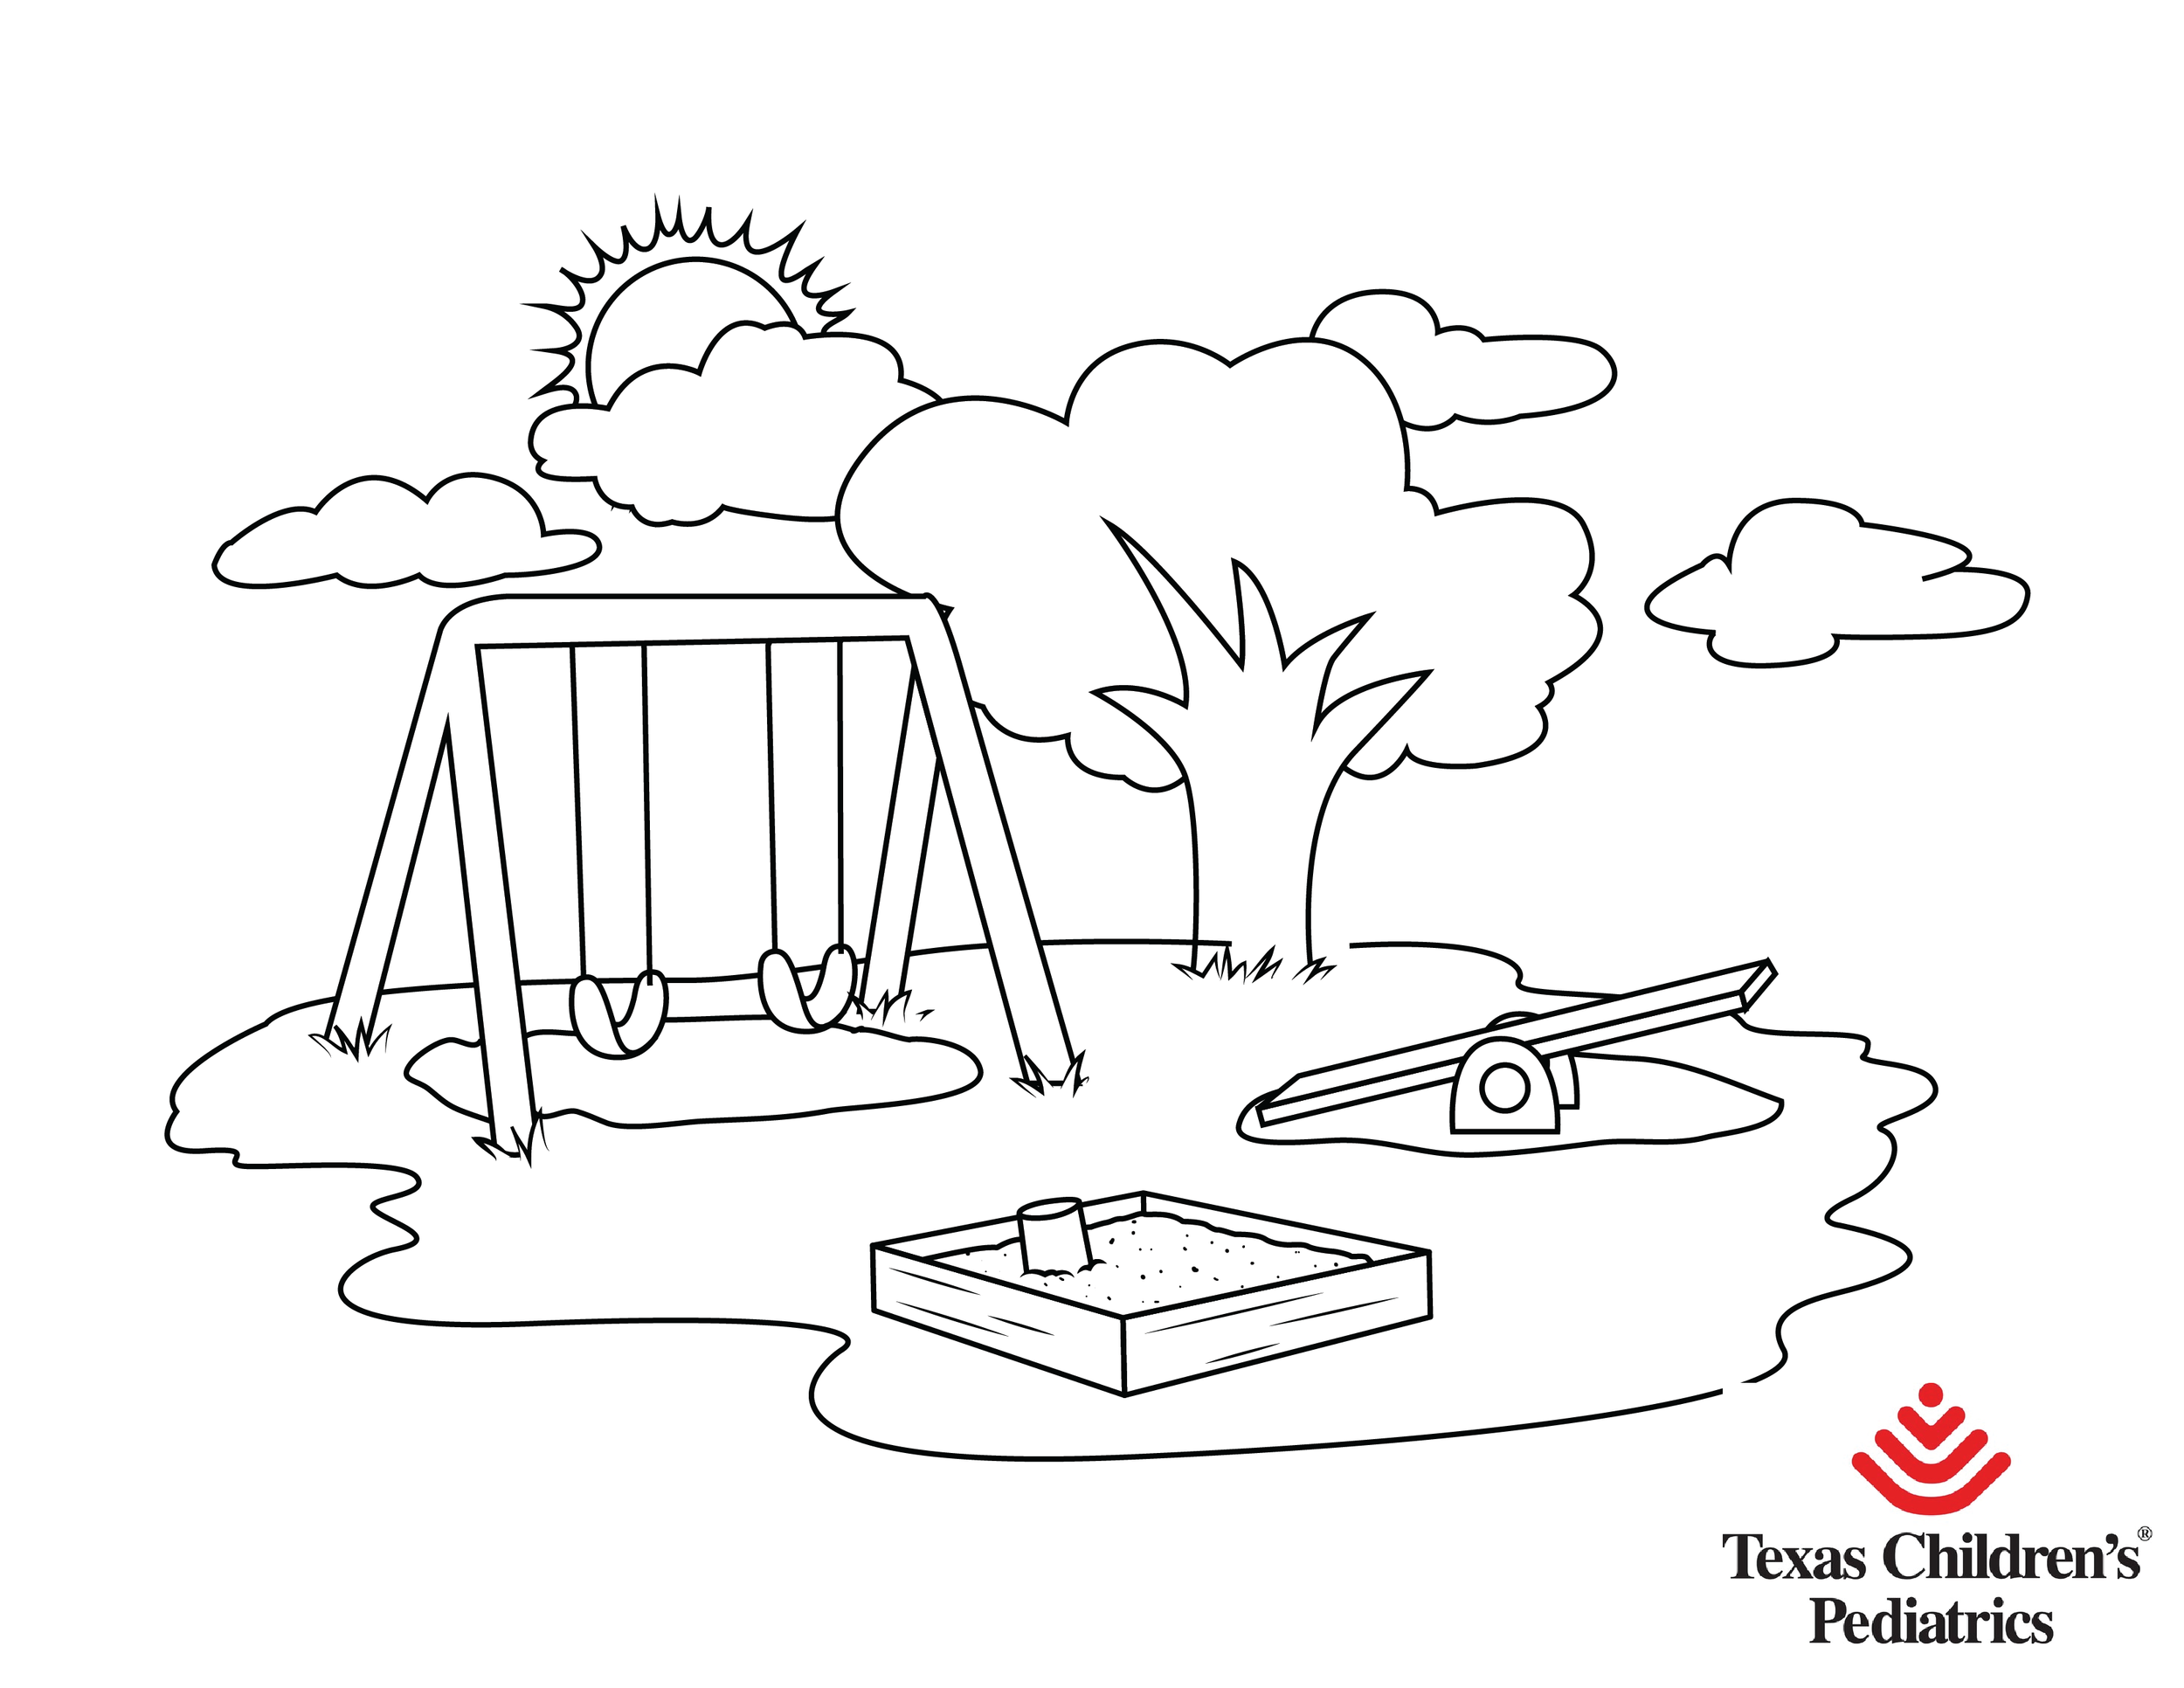 Playground_ColoringPage-01.png